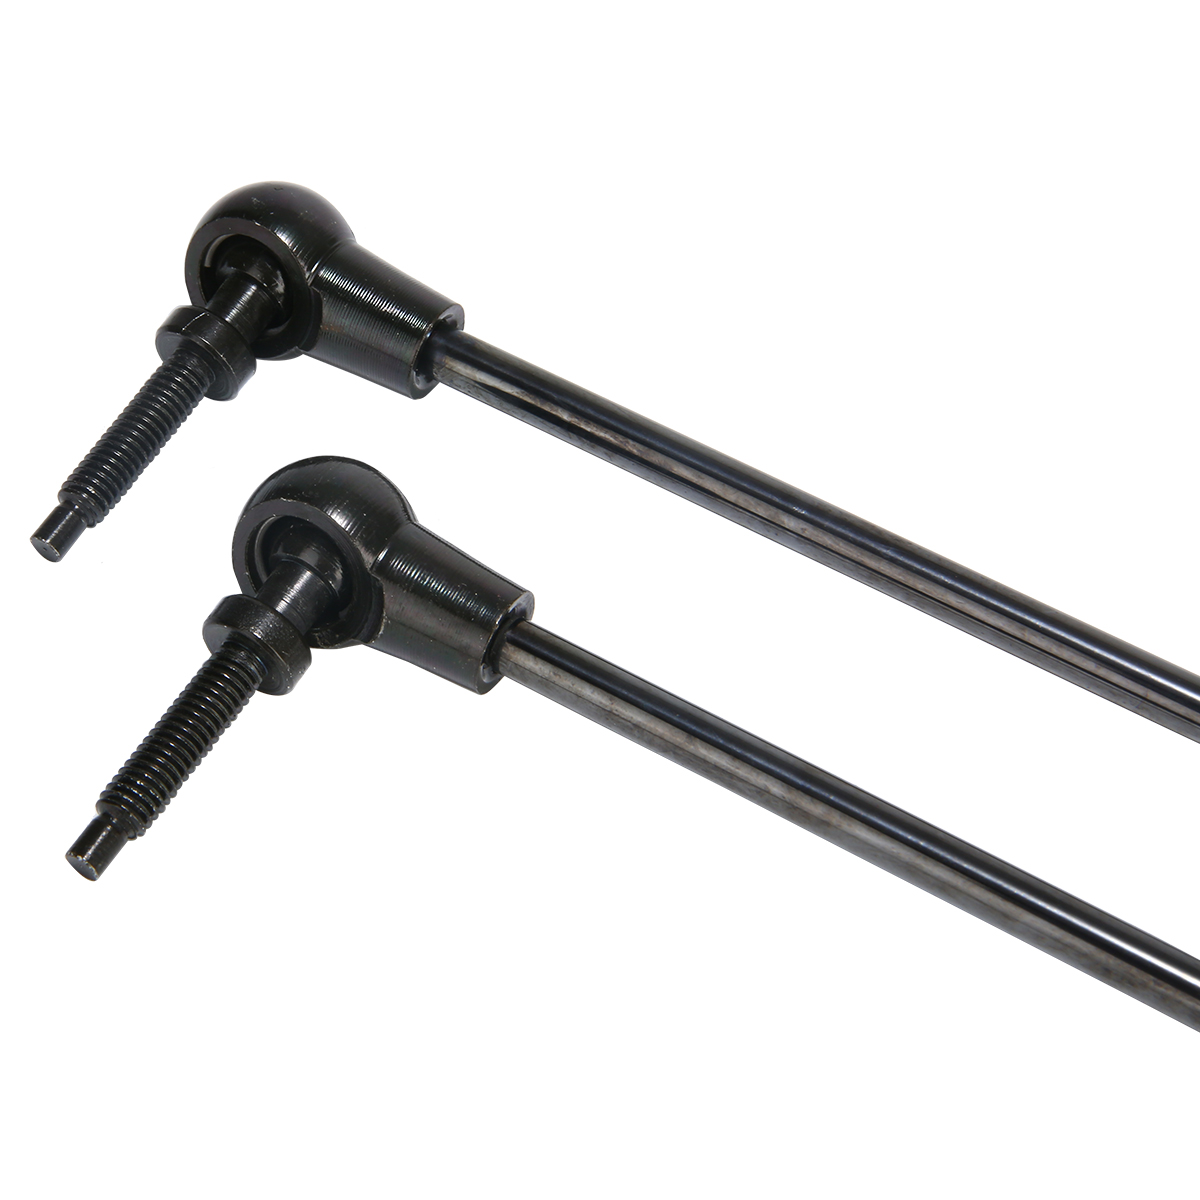 For Jeep Grand Cherokee 199-2004 6Pcs Strut Bars For Front Bonnet Tailgate Rear Window Lift Support